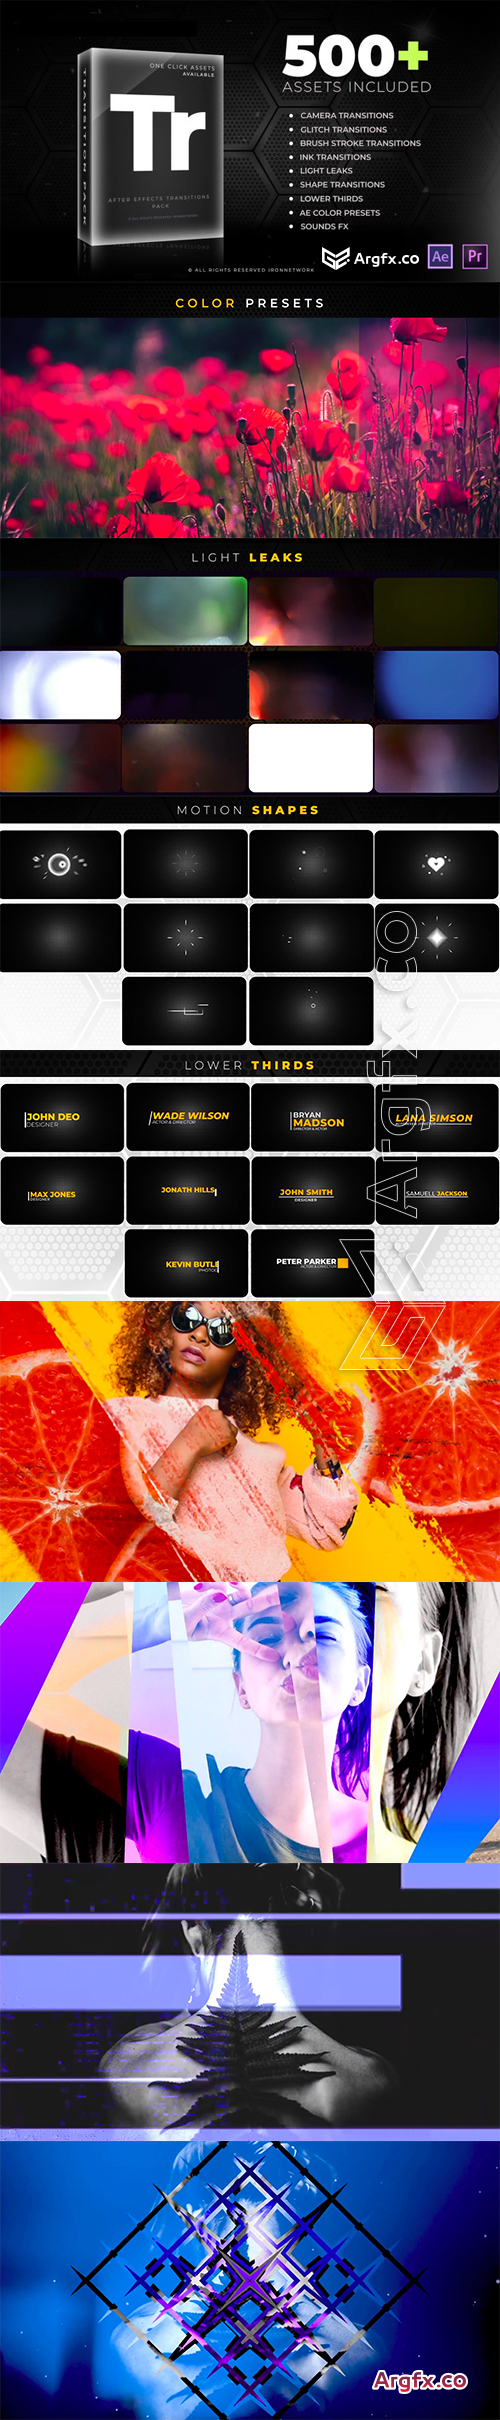 Videohive Transitions V2 21637768